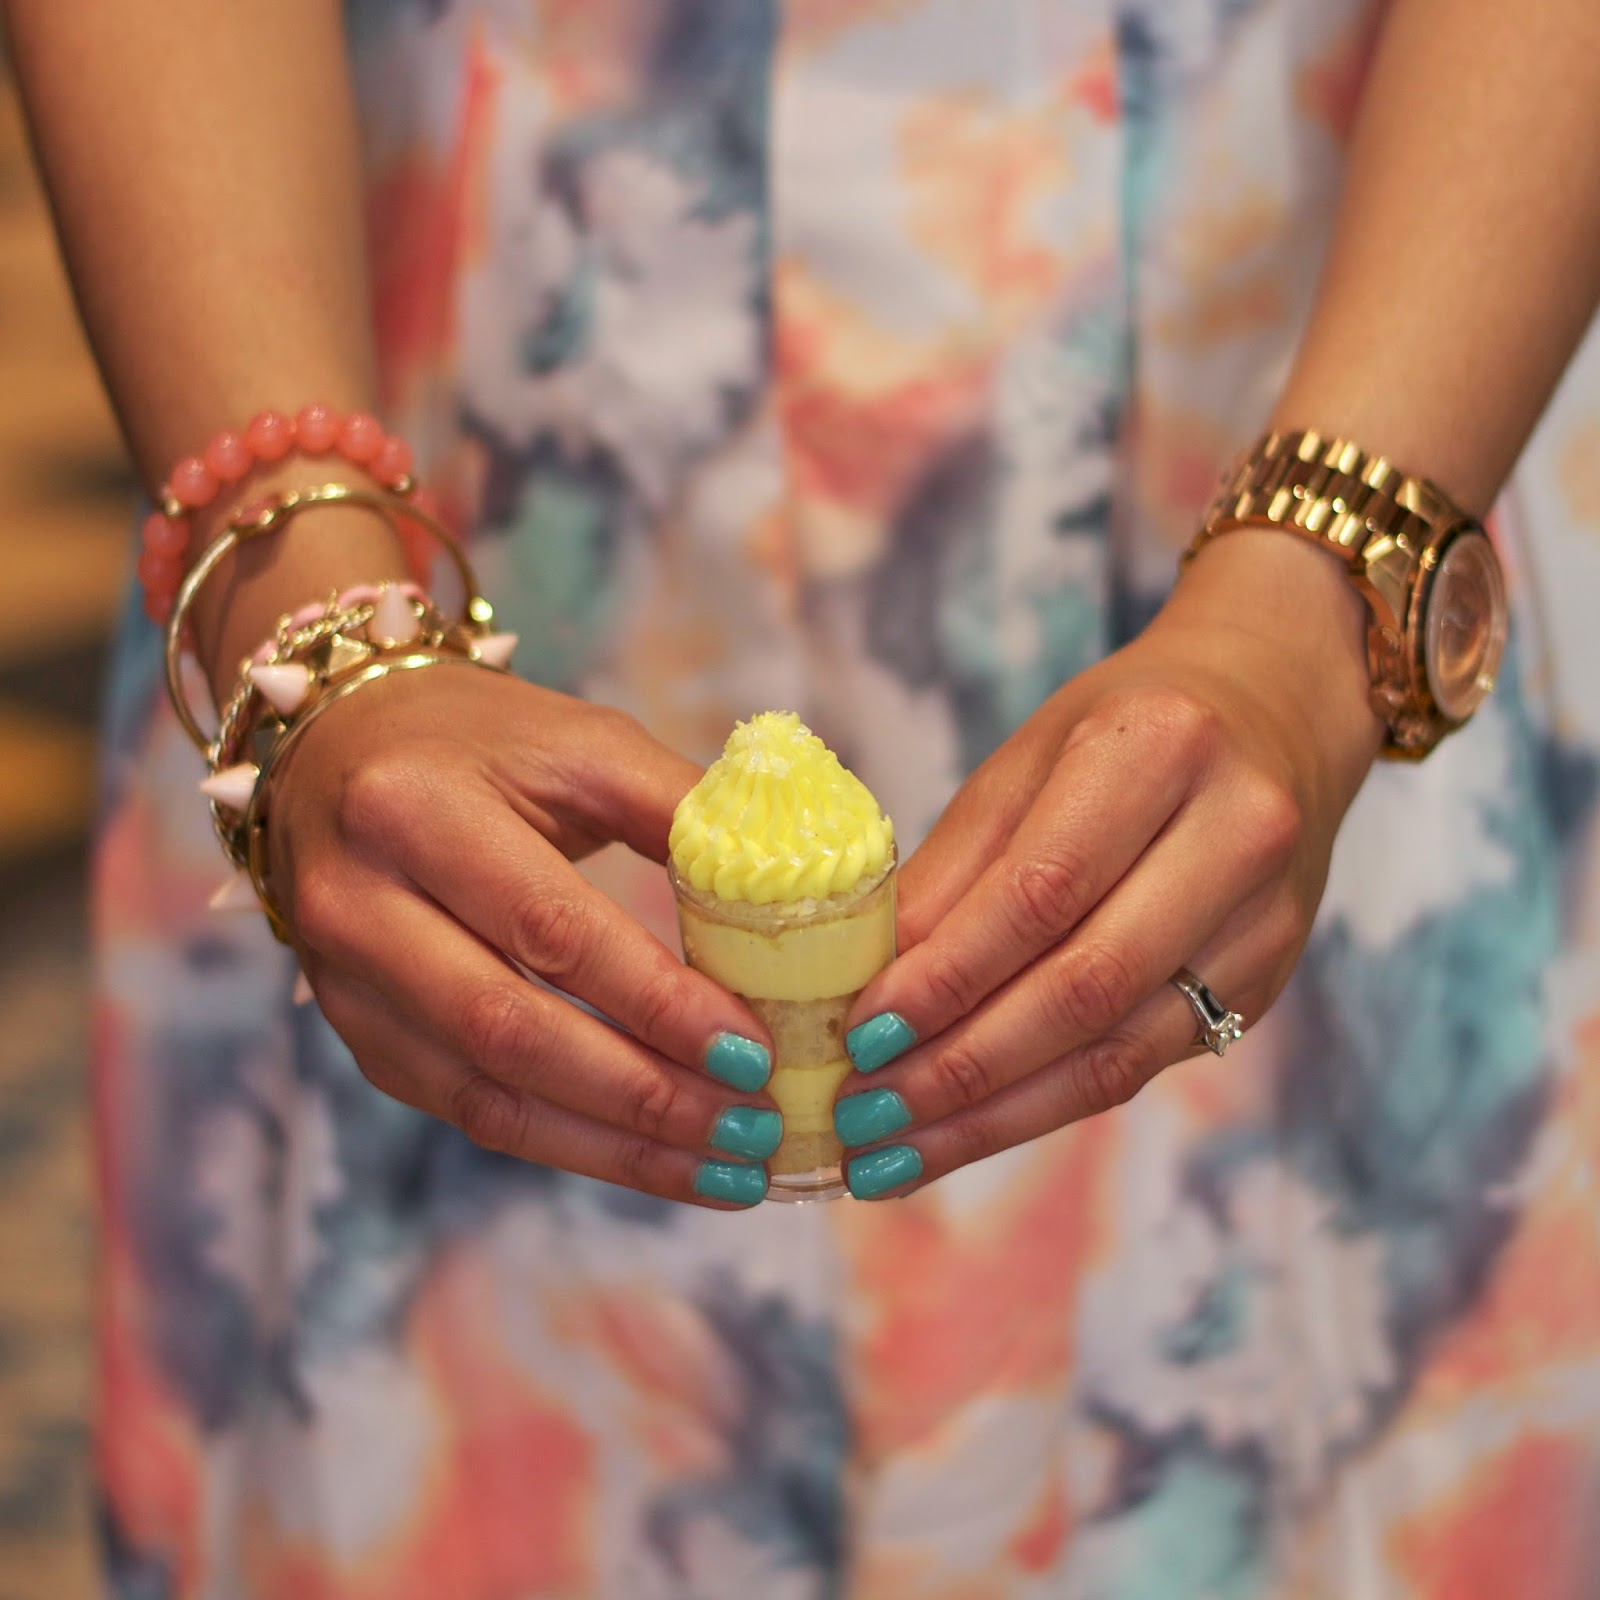 Minty Nails and Arm Candy, Minty Nails with gold, Peach Arm Candy, Pop of mint, YummyCupcakes SD lemon